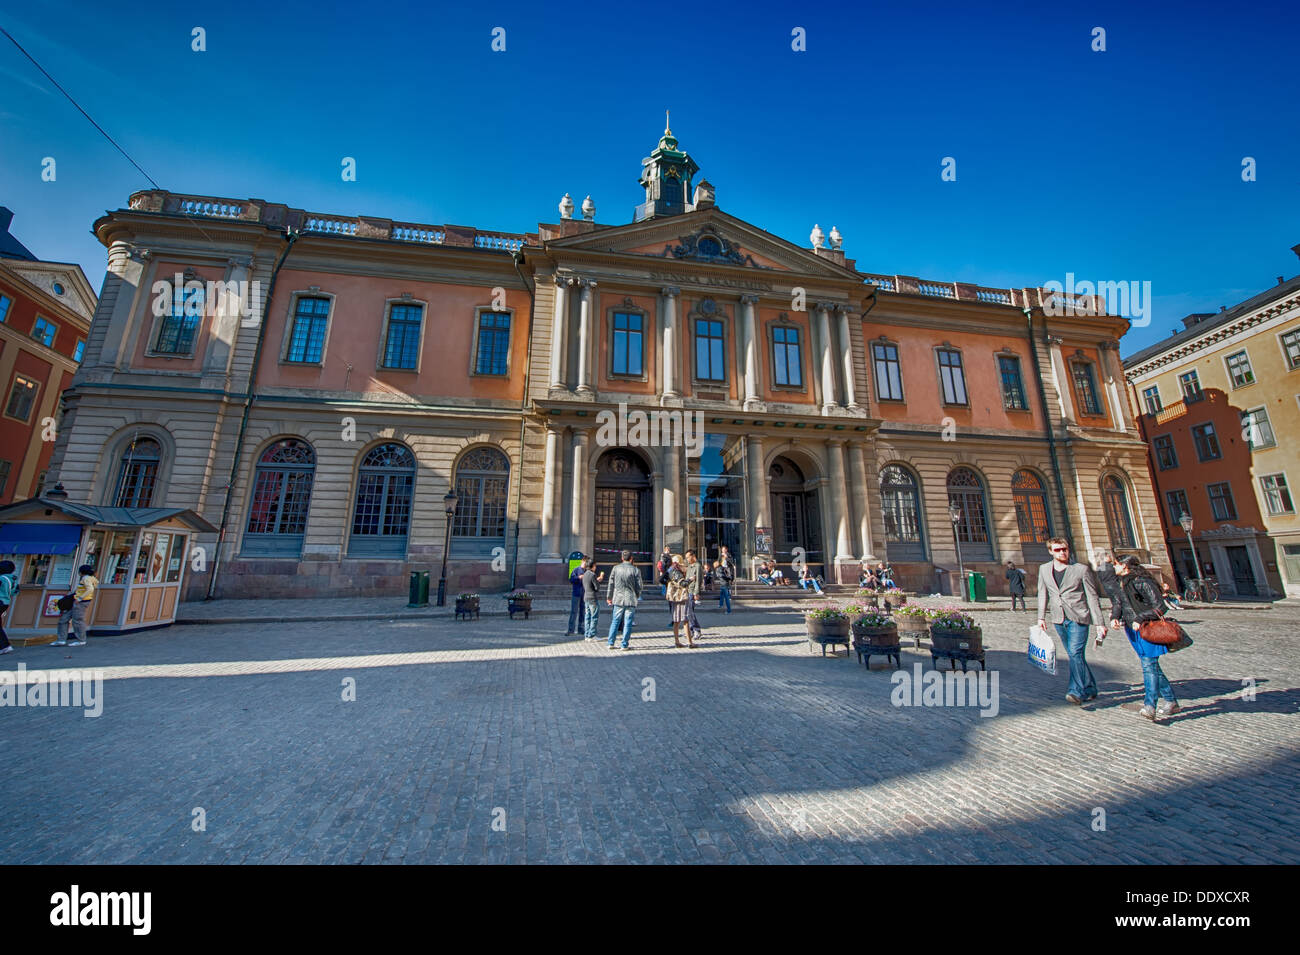 Tourists admire the Stockholm stock exchange building. The building in the Old Town is the home of the Swedish academy. - Stock Image